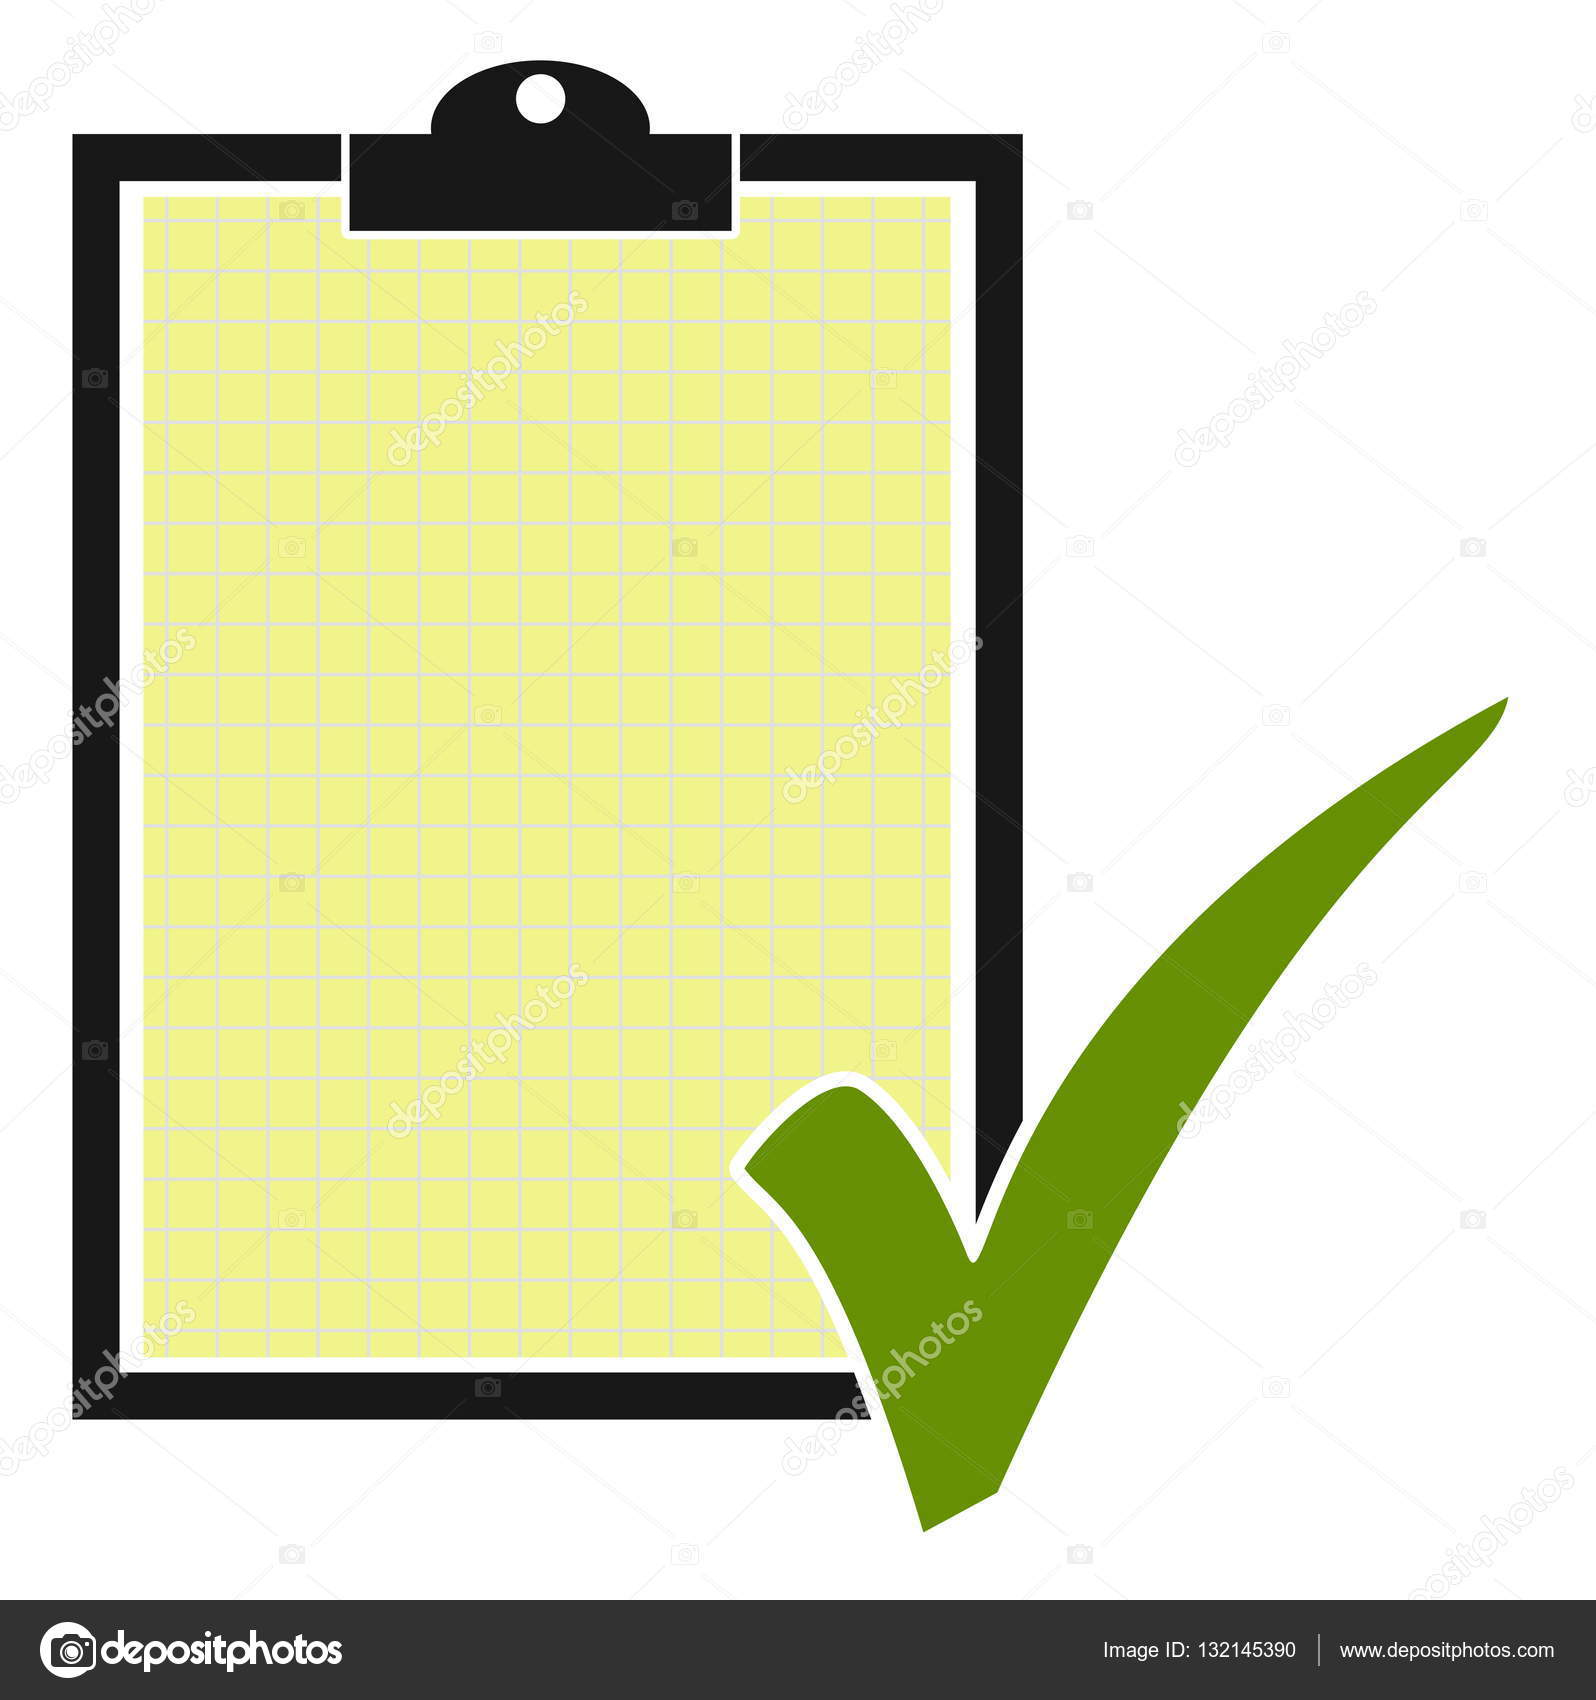 Clipboard clipart tick. Green and isolated with